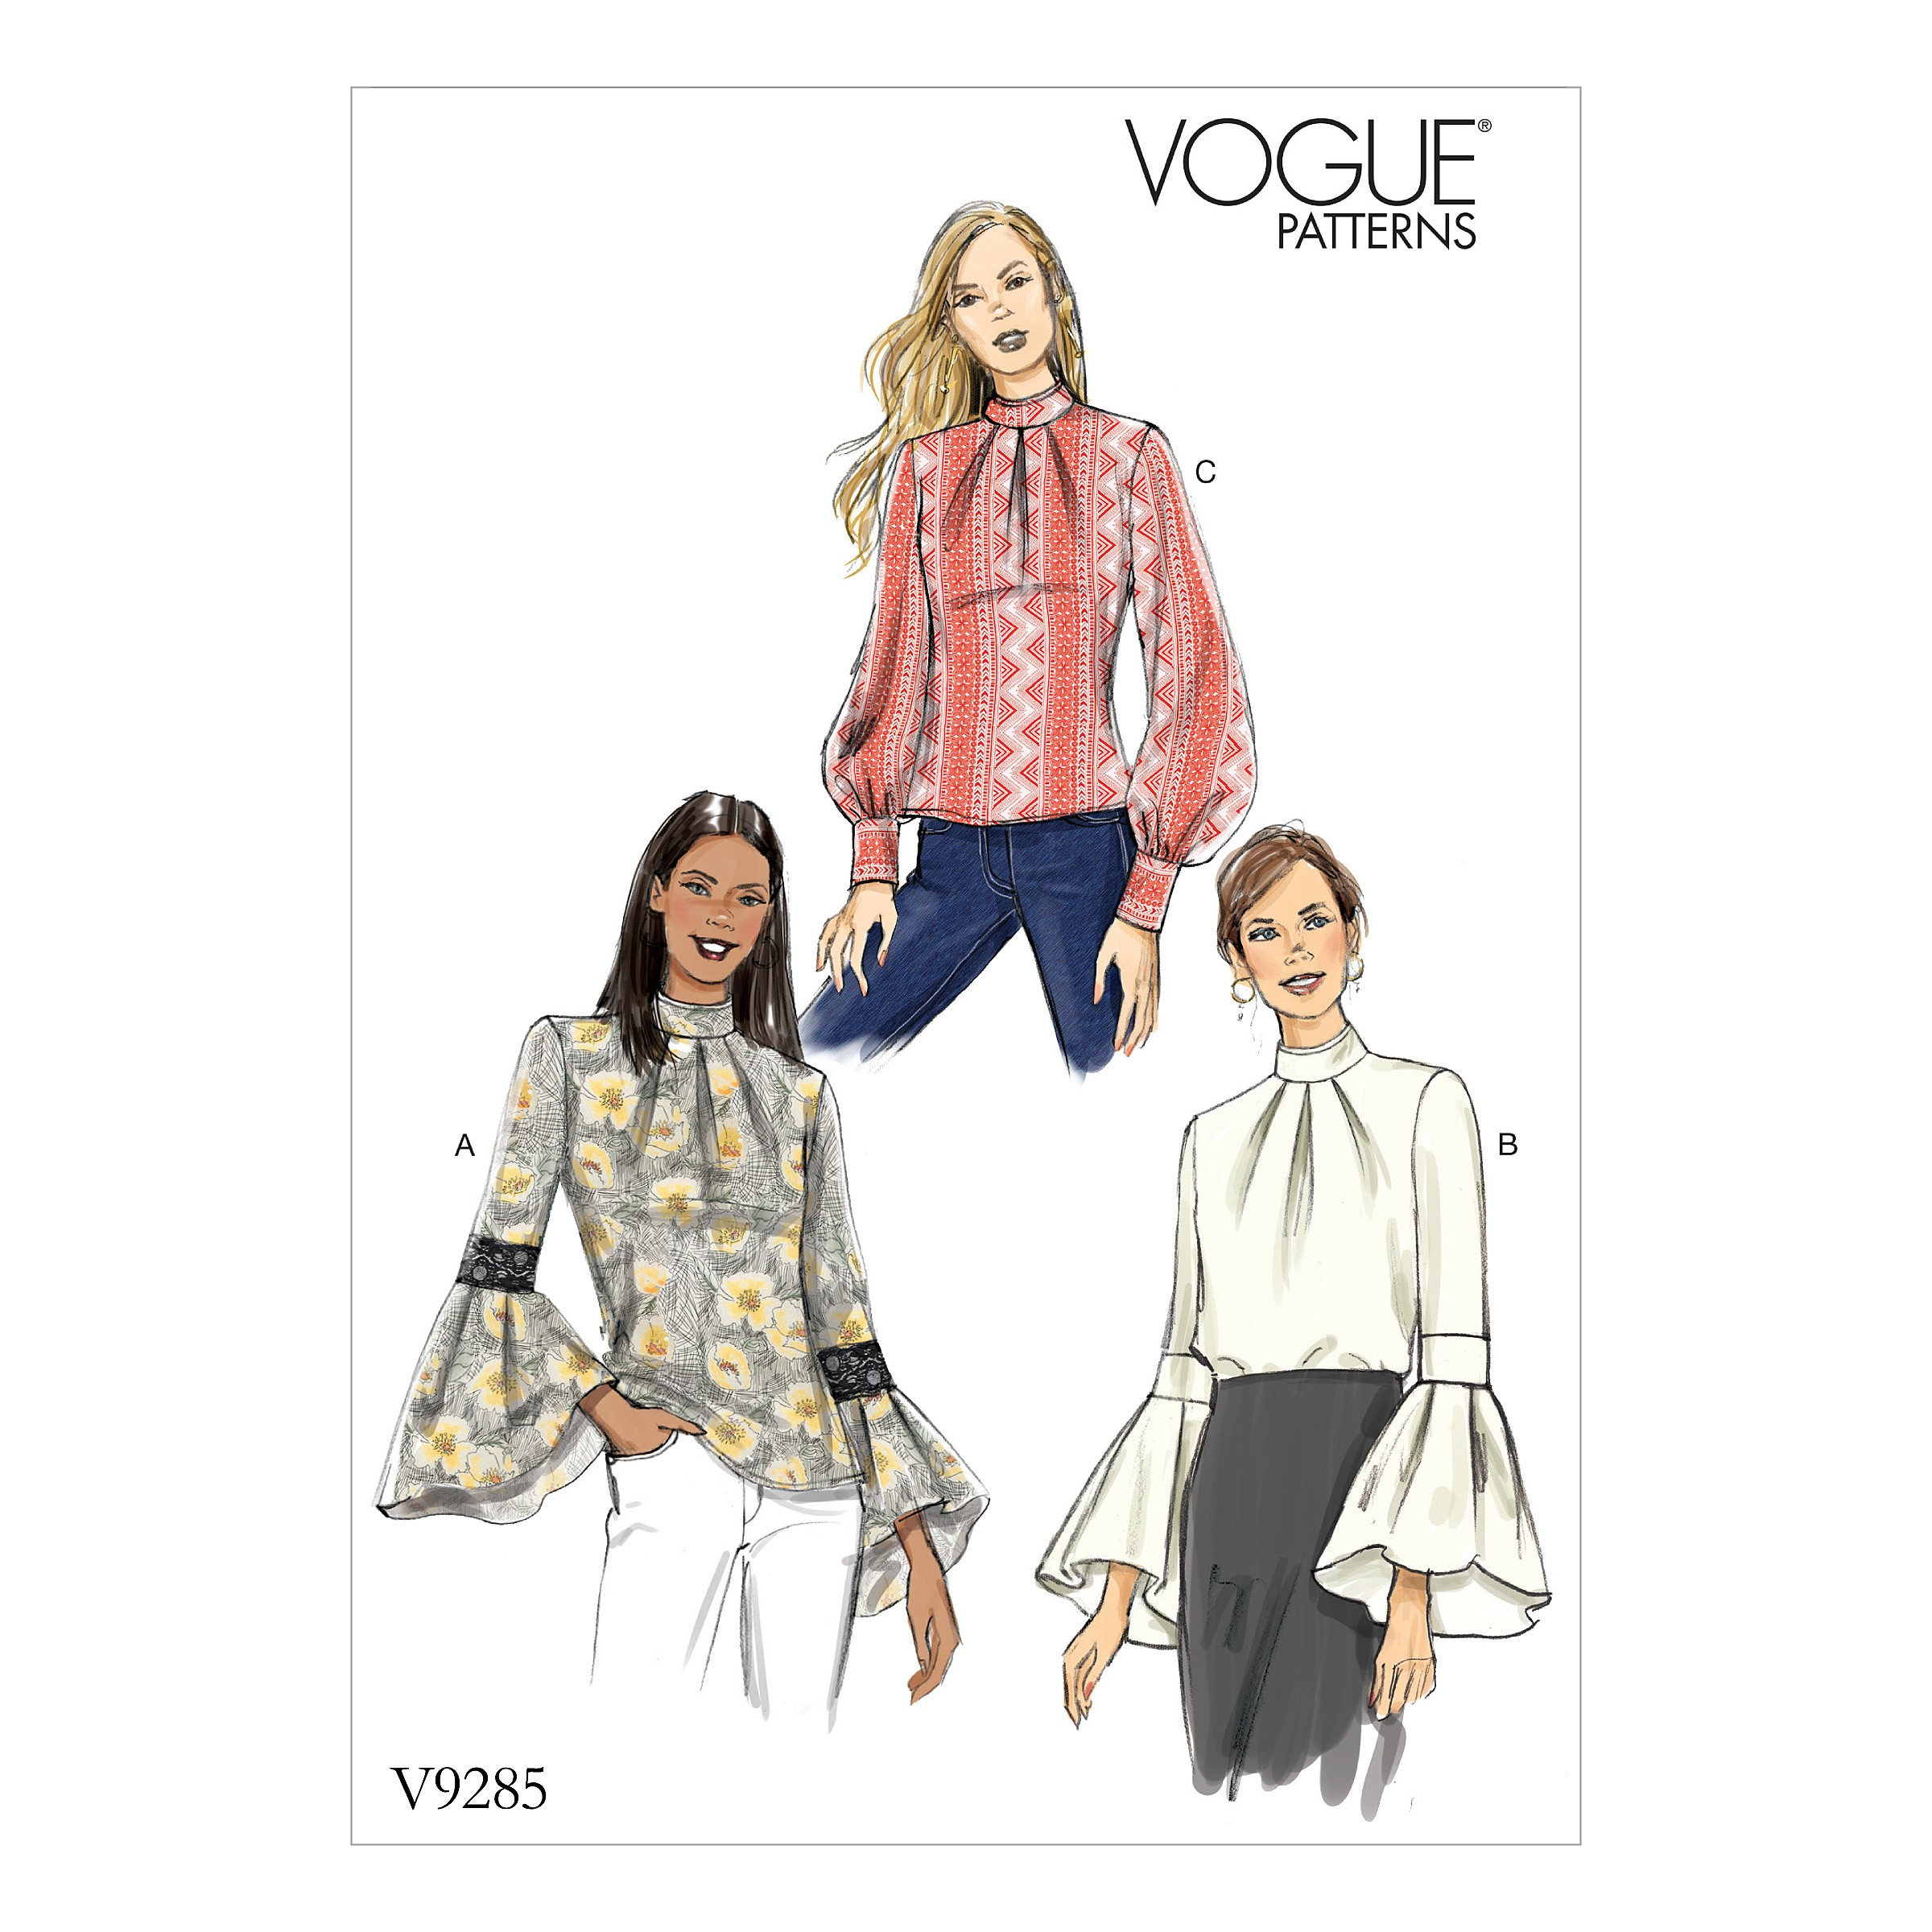 Vogue Sewing Pattern V9285 Women's Top With Sleeve & Cuff Variations